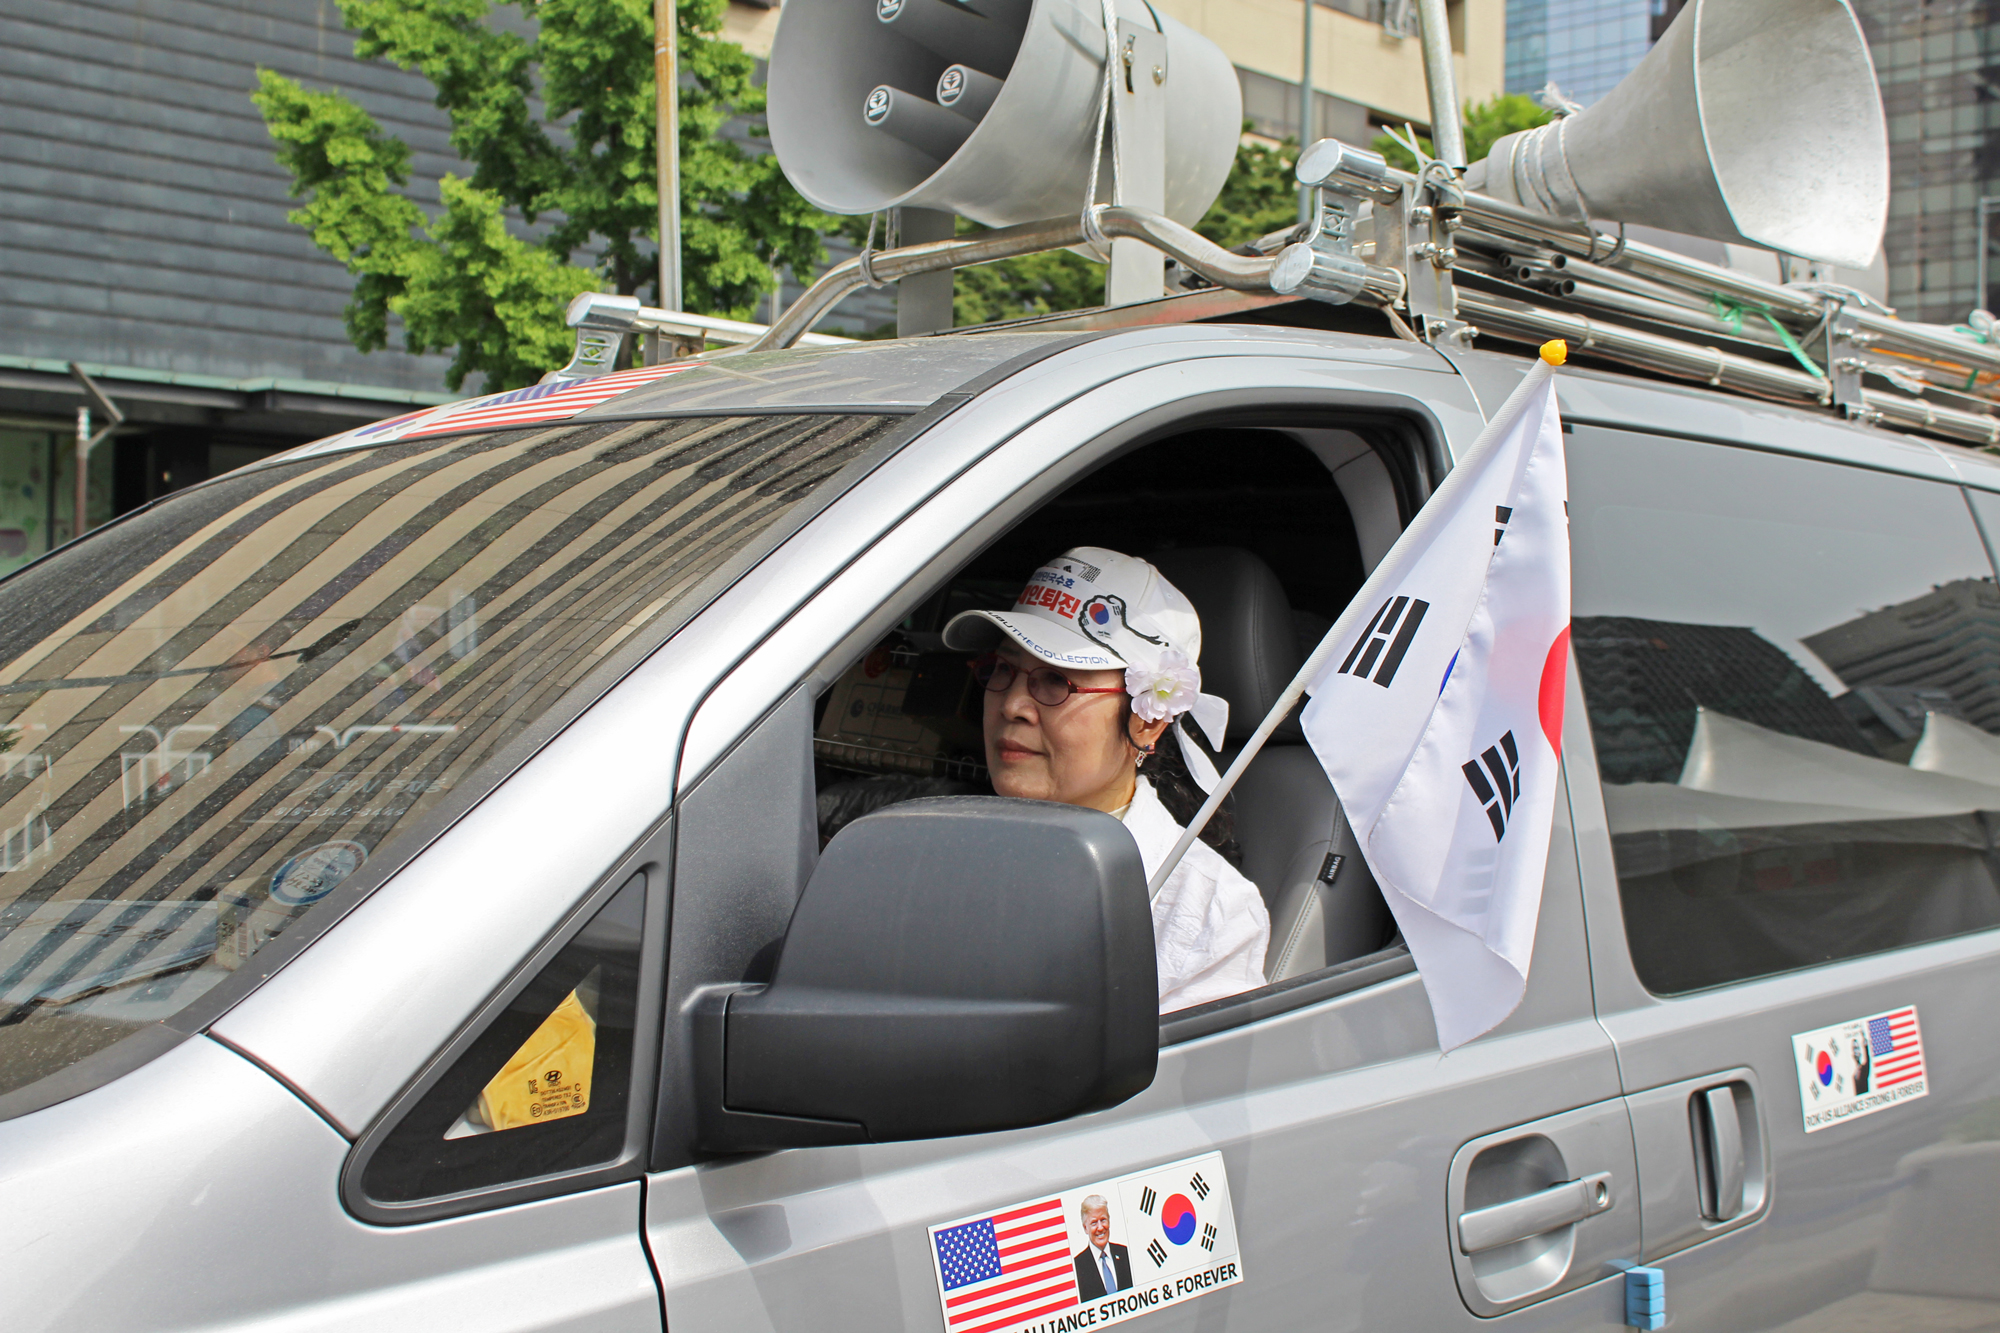 A woman drives a vehicle leading a group of demonstrators protesting for a stronger U.S.-South Korea alliance and less engagement with North Korea on June 1, 2019. (Photo by Kelly Kasulis/GroundTruth)